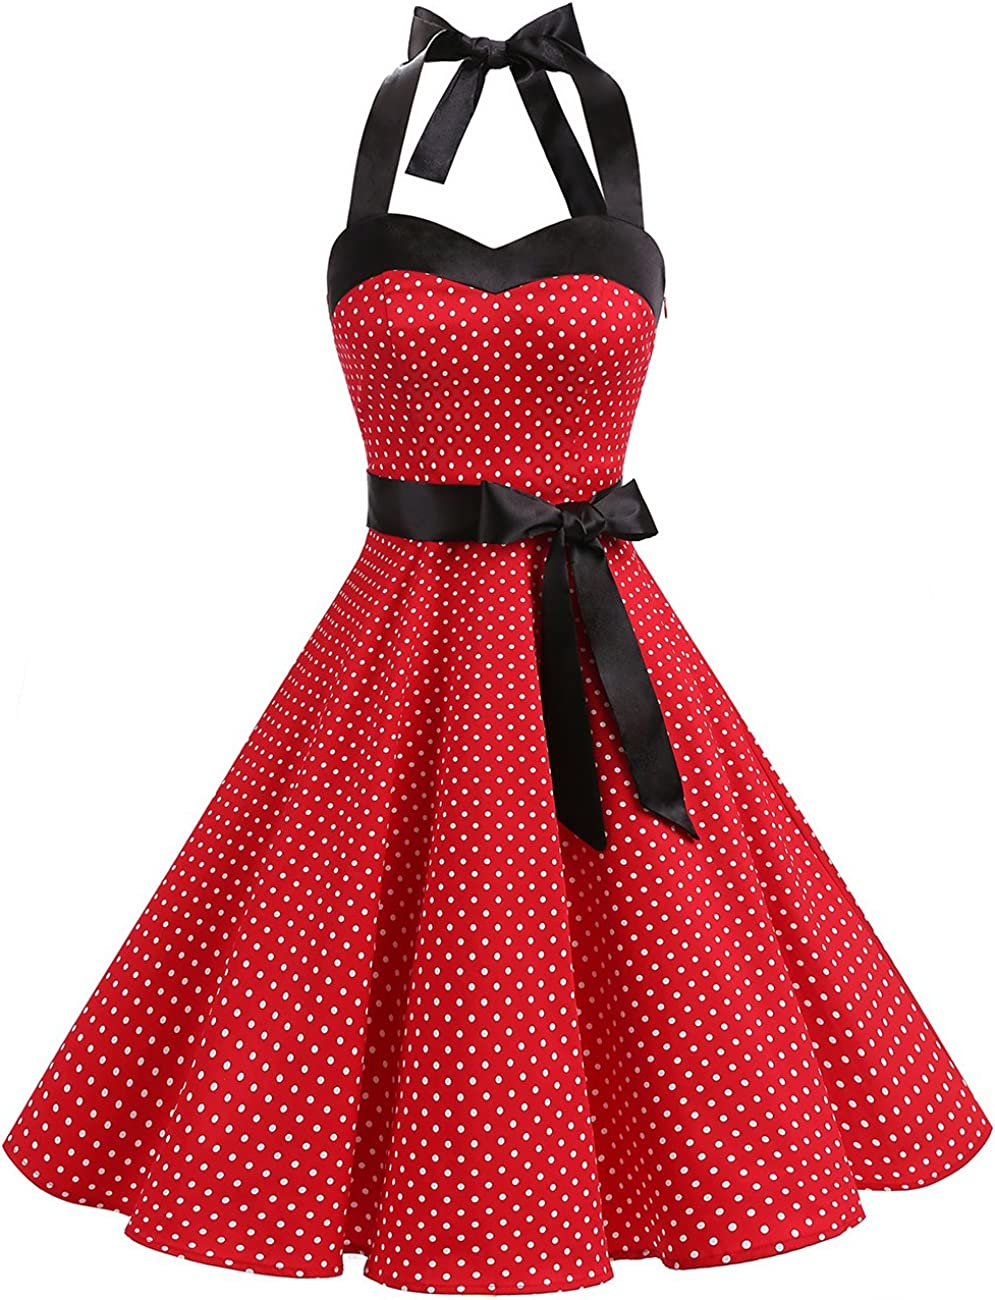 TALLA XL. Dresstells® Halter 50s Rockabilly Polka Dots Audrey Dress Retro Cocktail Dress Red Small White Dot XL